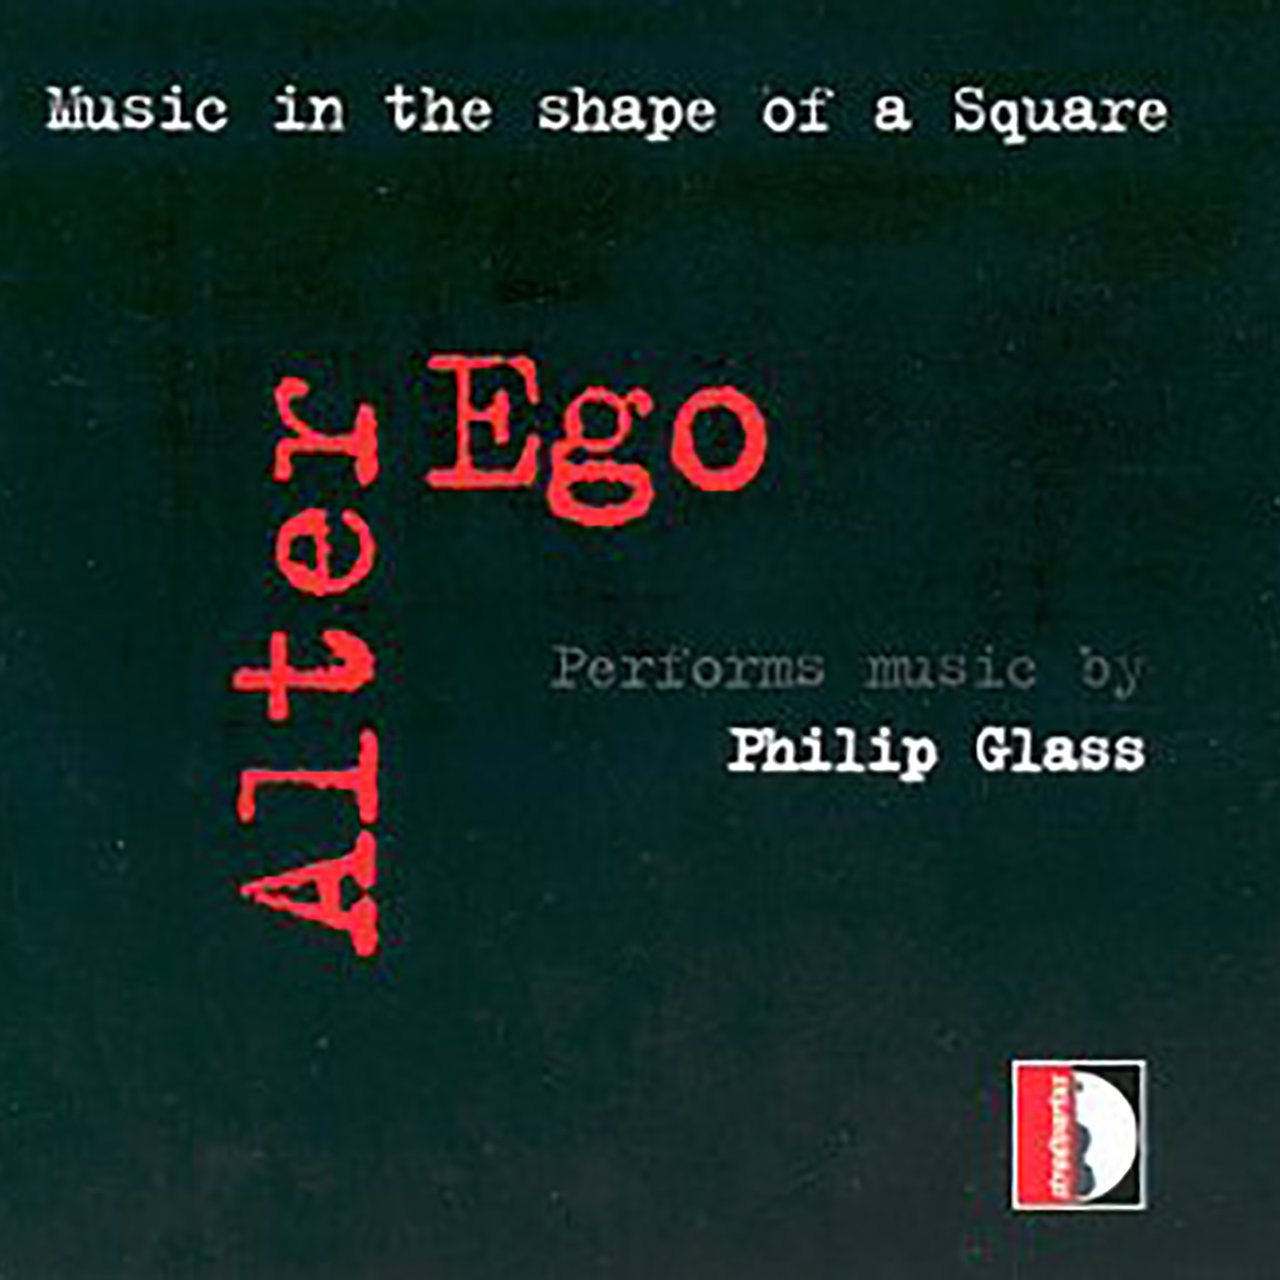 Philip Glass: Music in the Shape of a Square